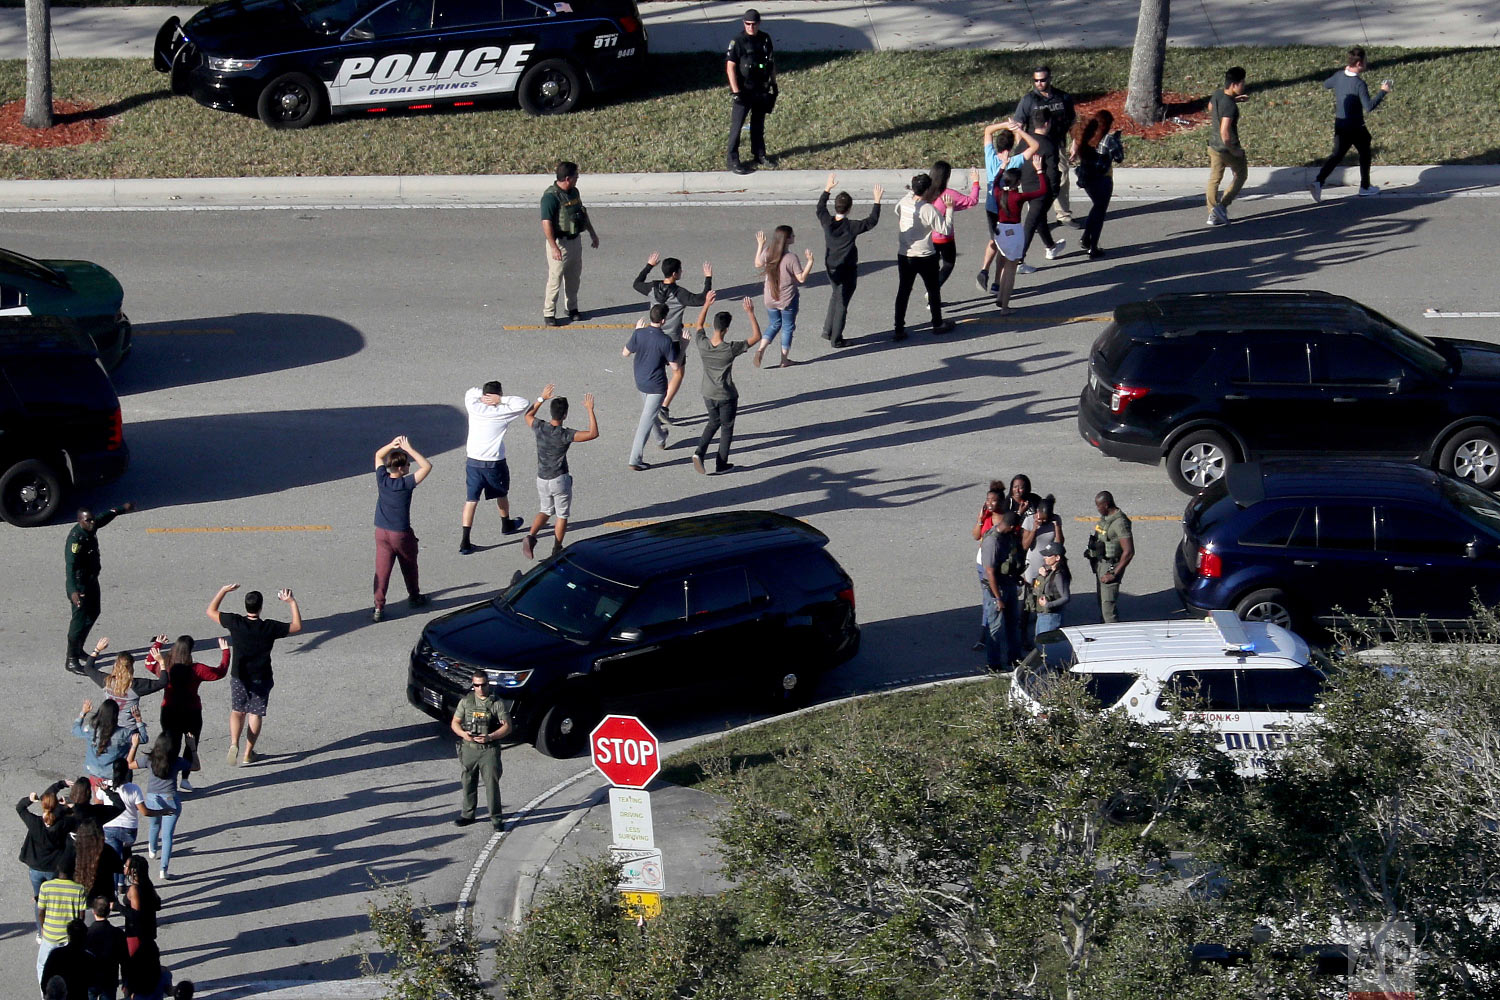 Students hold their hands in the air as they are evacuated by police from Marjory Stoneman Douglas High School in Parkland, Fla., on Feb. 14, 2018, after a shooter opened fire on the campus. (Mike Stocker/South Florida Sun-Sentinel via AP)